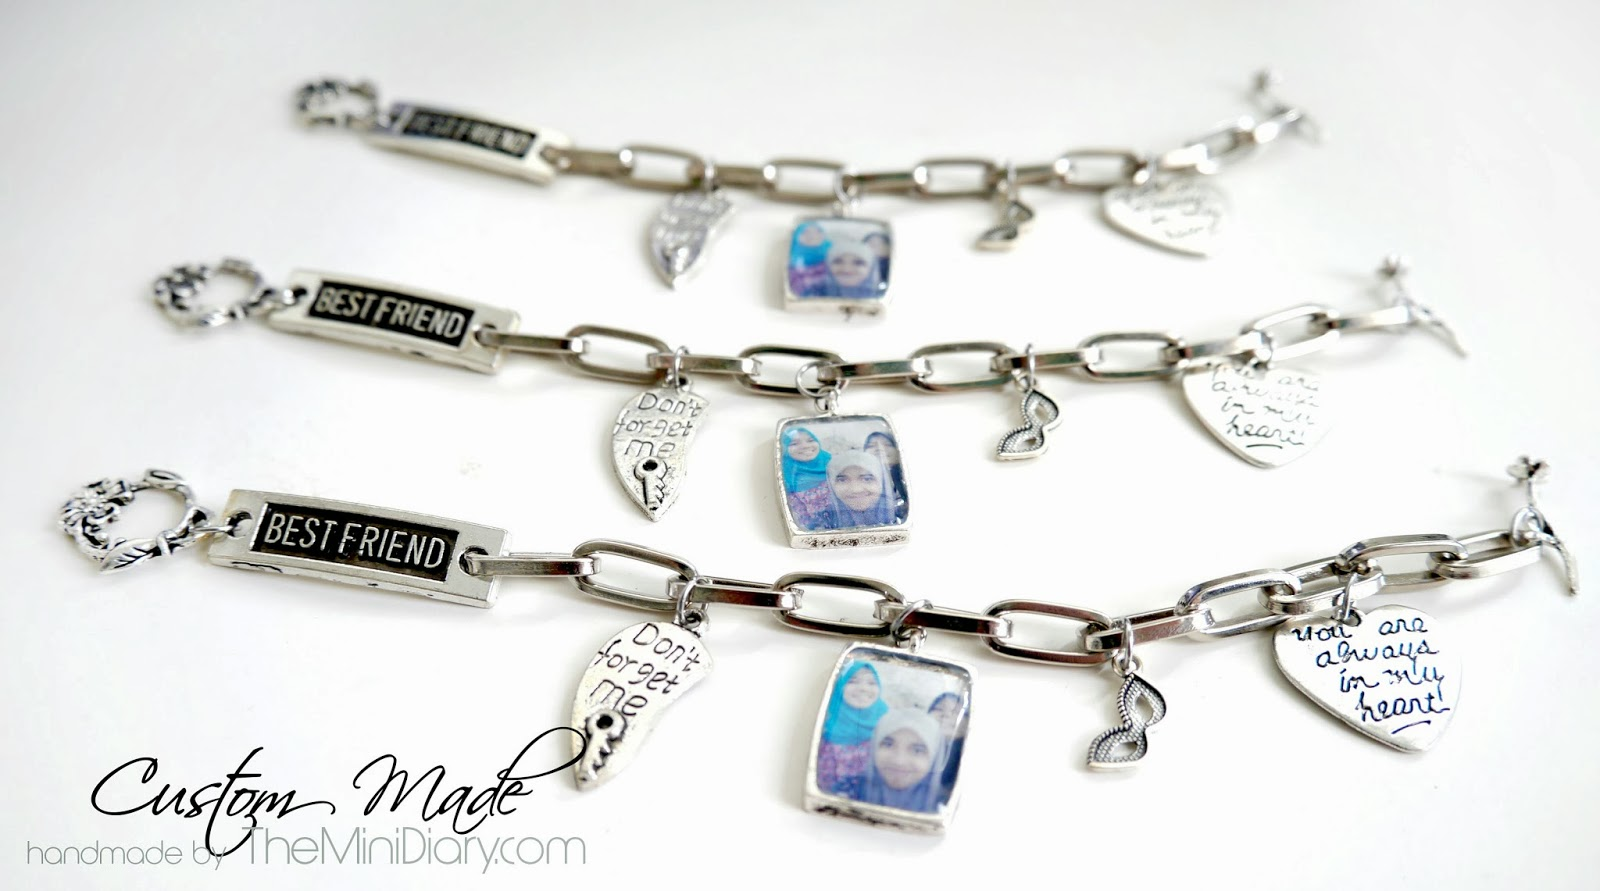 Here's A Set Of 3 Charm Bracelets For 3 Best Friends With A Custom Made  Photo Charm Of The 3 Of Them :) A Keepsake Bracelet To Be Treasured For A  Long Long